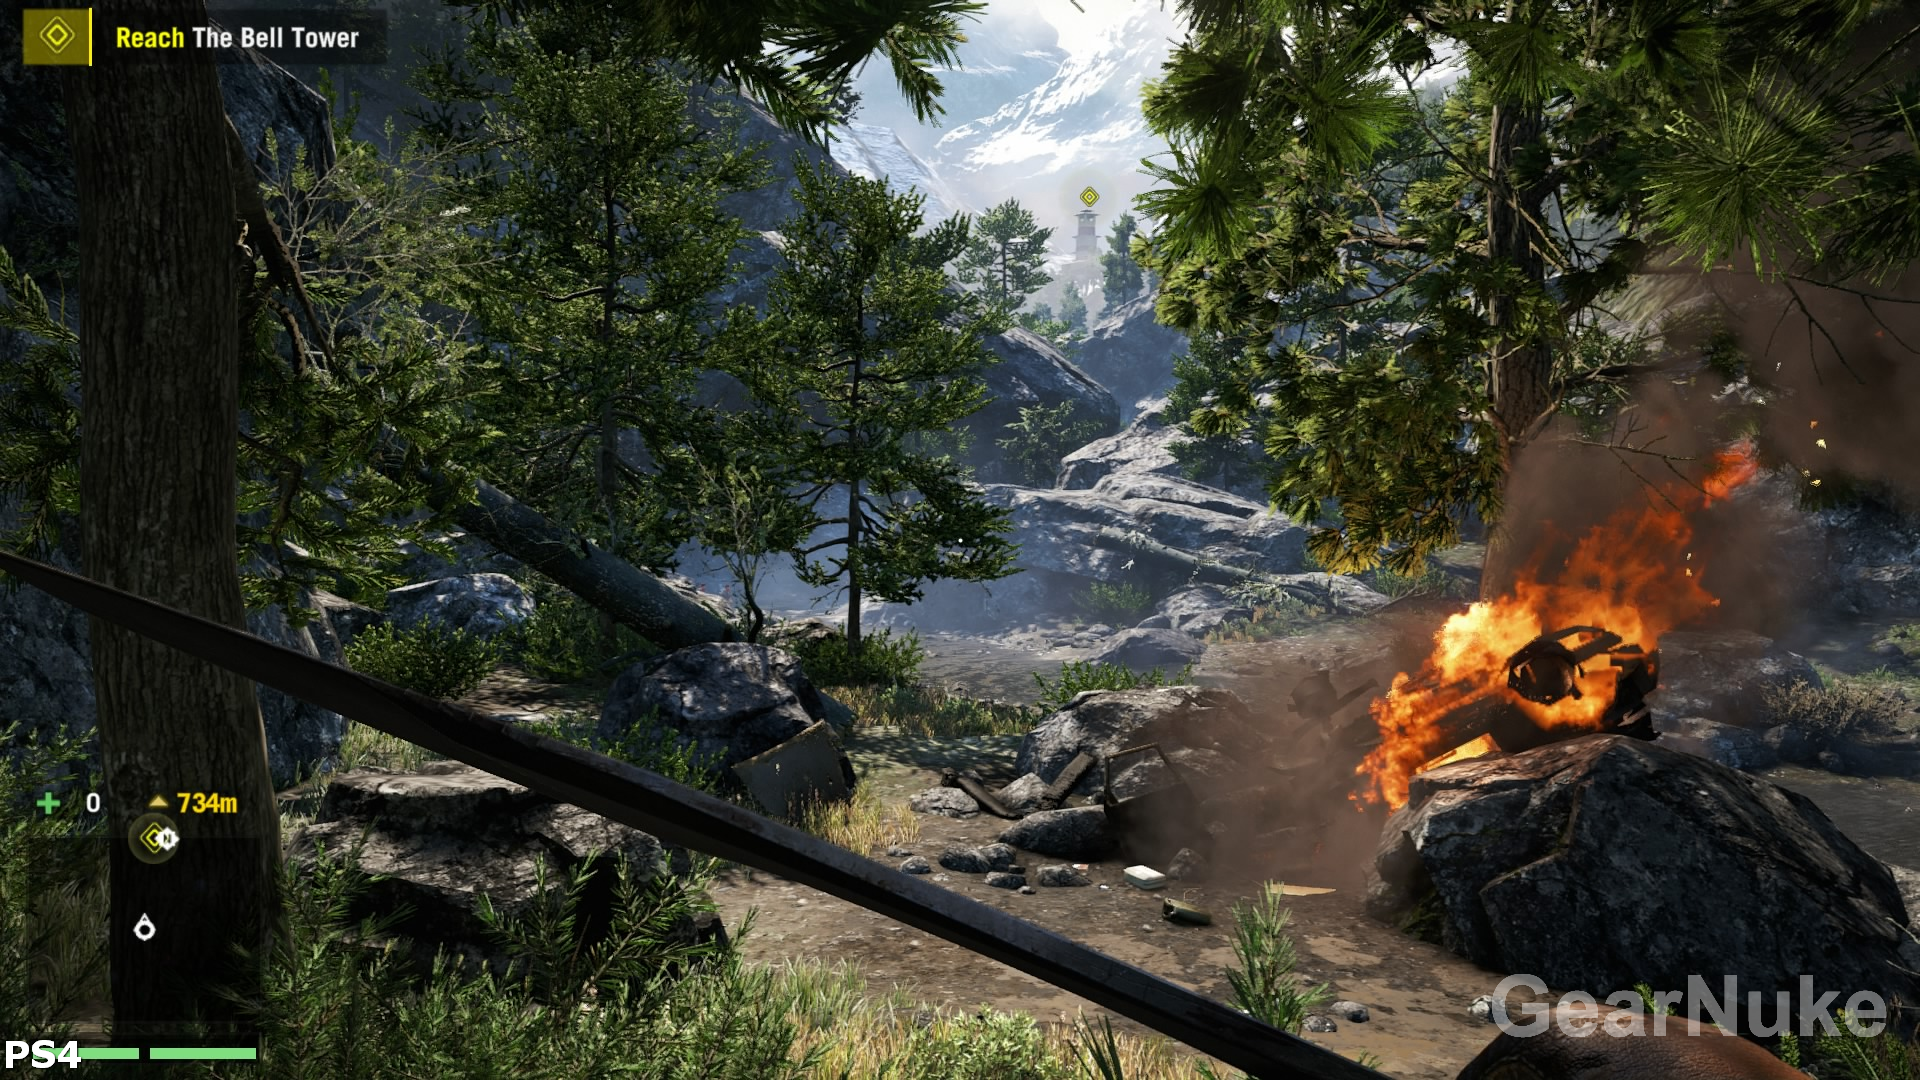 2 Or 3 Things I Know: Far Cry 4 PS3 Vs. PS4 Vs. PC Ultra Image Comparison Shows